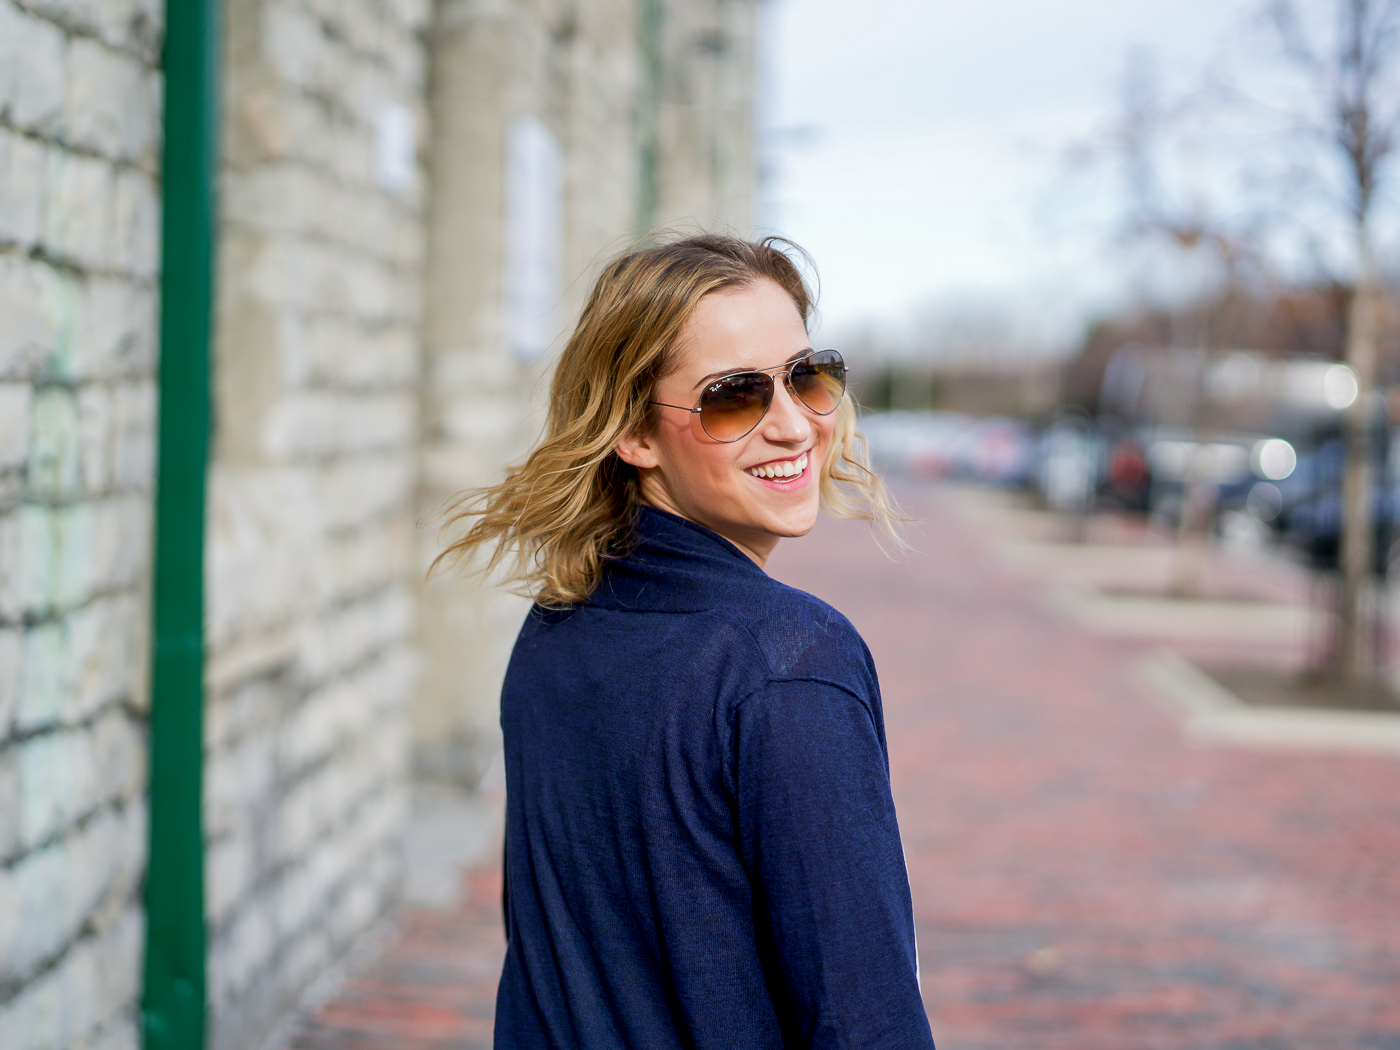 Jackie Goldhar is a Toronto fashion and lifestyle blogger, wearing a spring outfit